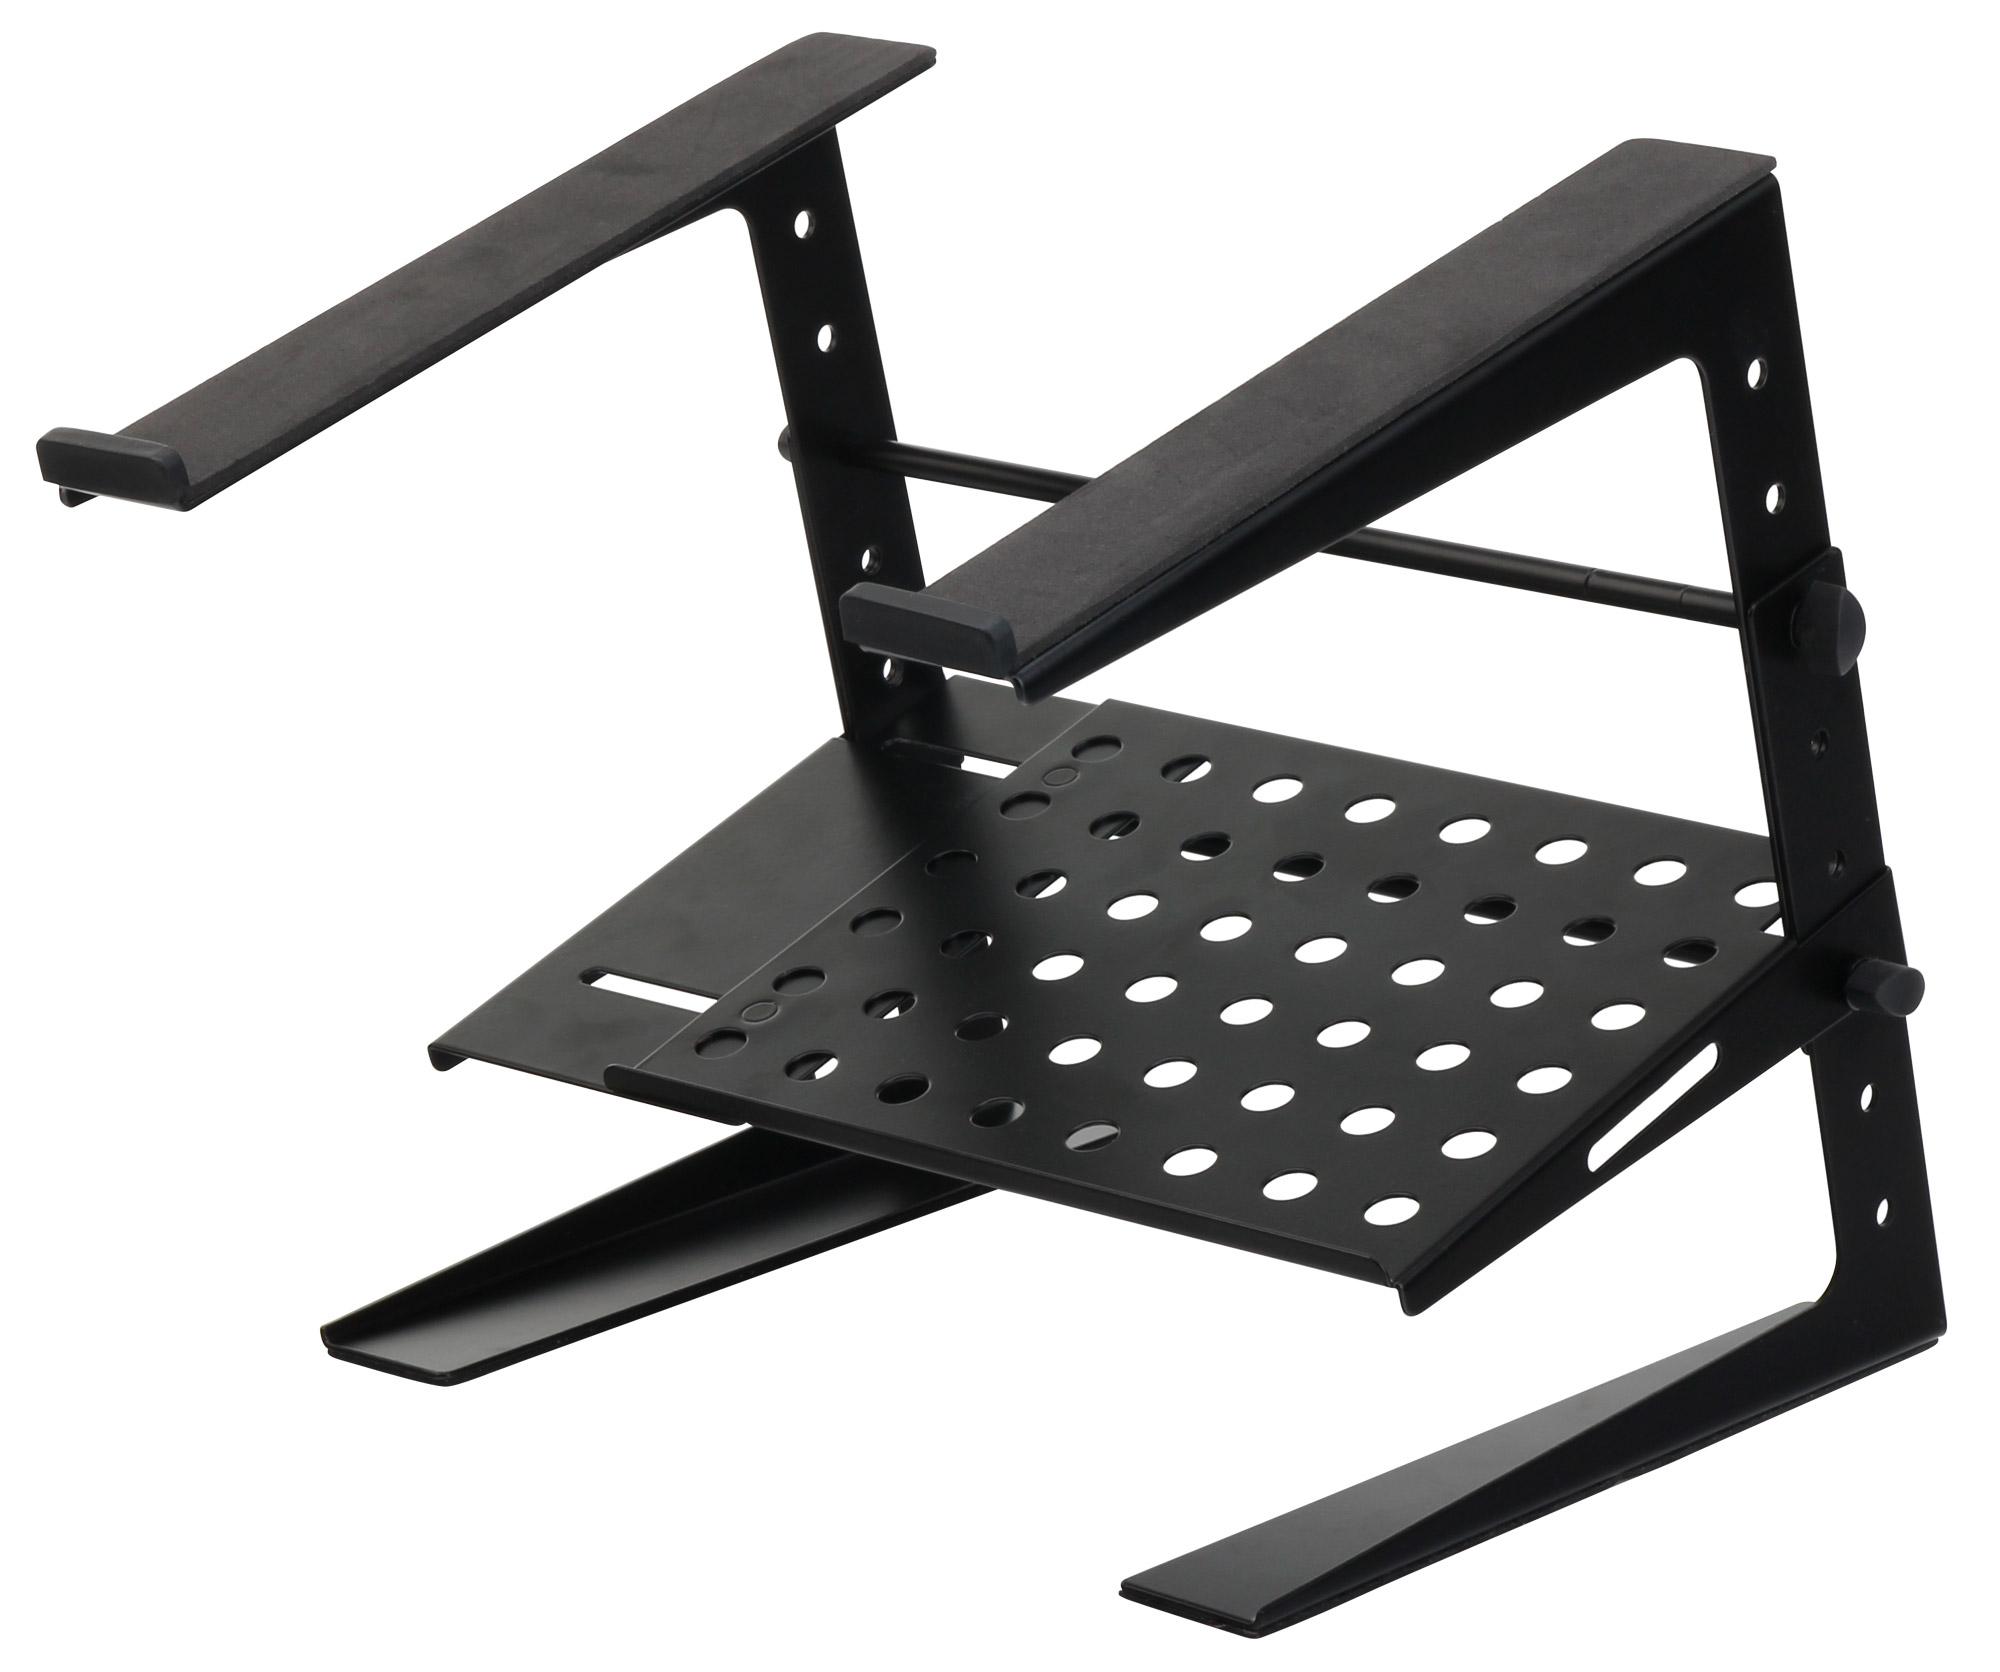 Pronomic LS 200 Laptop Stand Deluxe